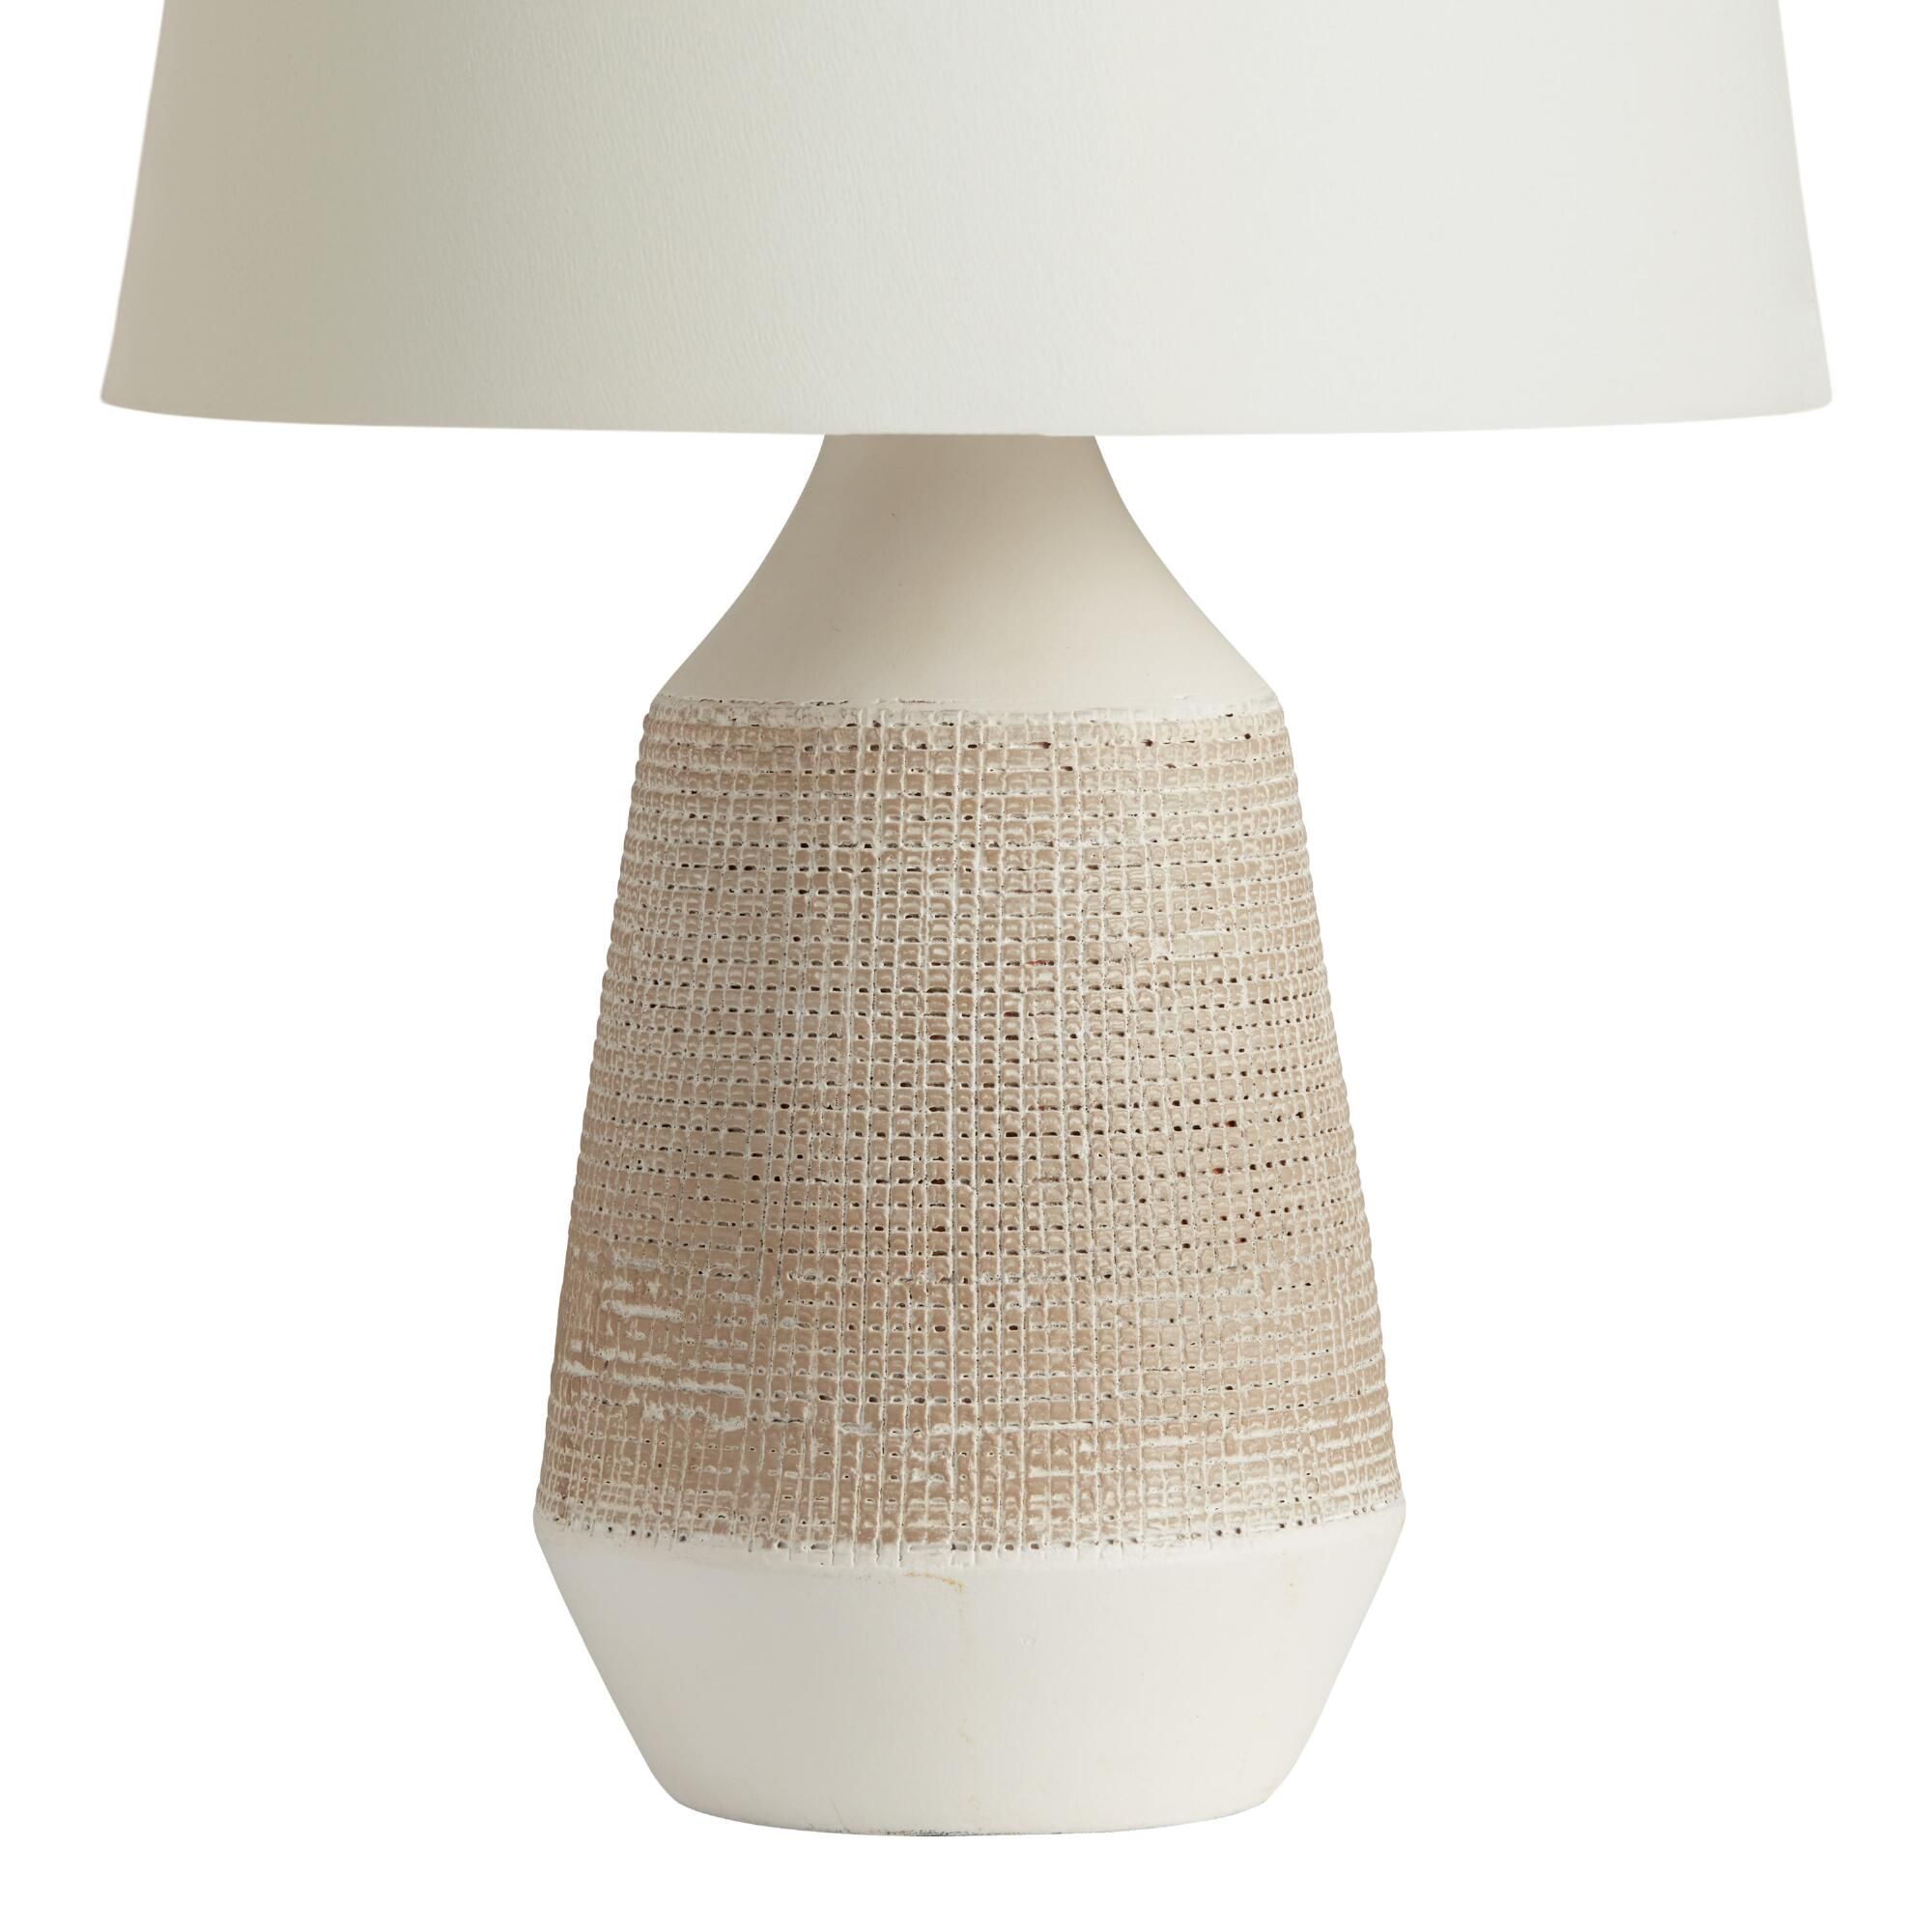 White And Gray Textured Ceramic Table Lamp Base World Market Table Lamp Base Ceramic Table Lamps Lamp Bases White table lamp base